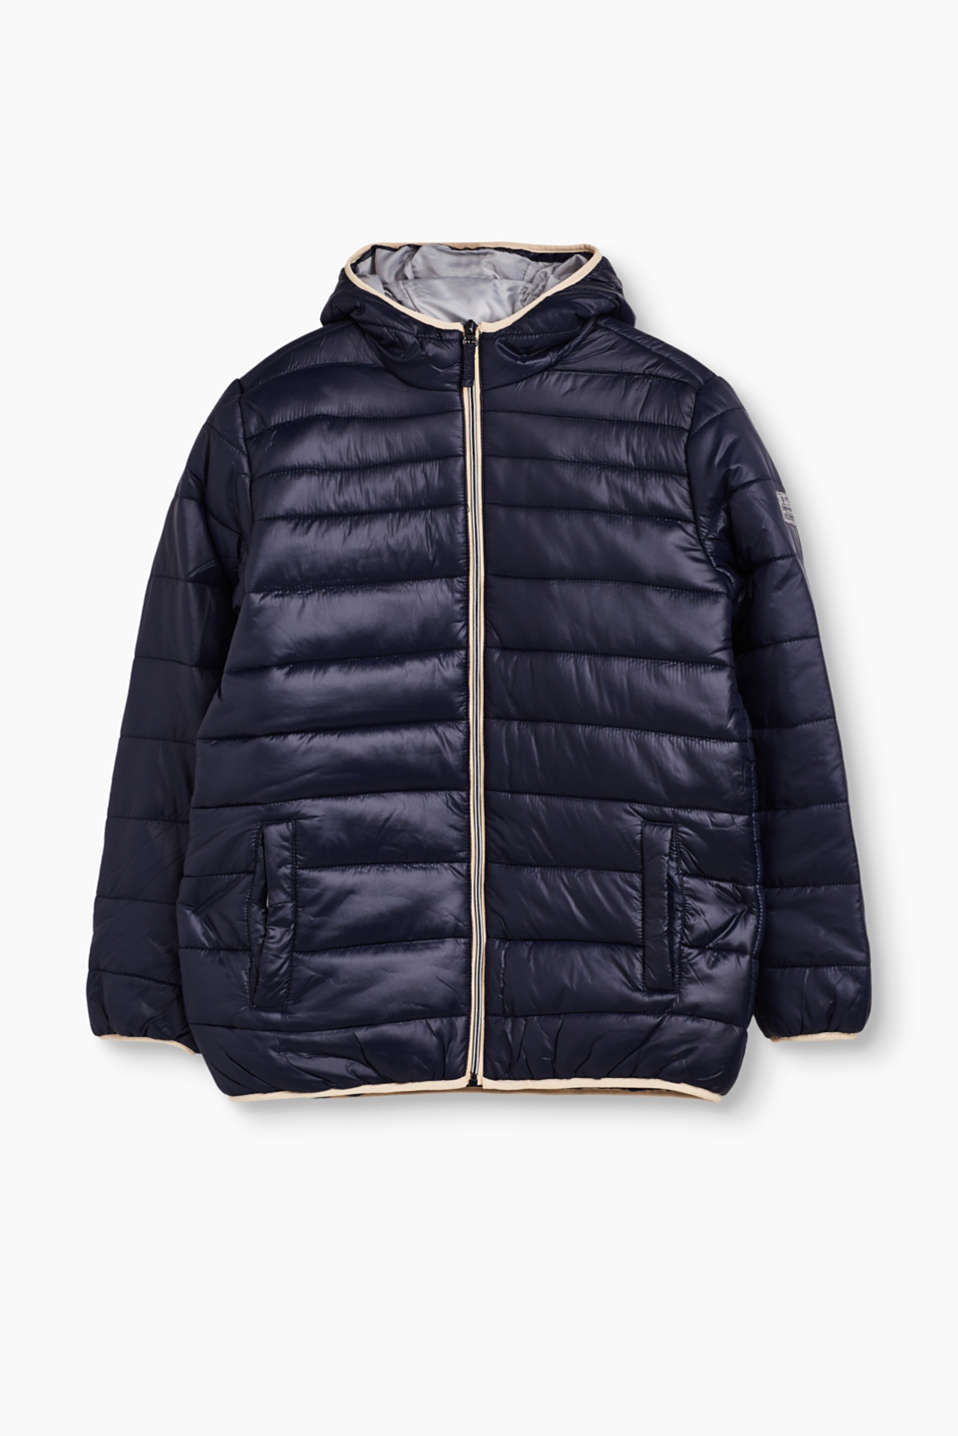 Esprit - Quilted jacket with a hood and fleece lining